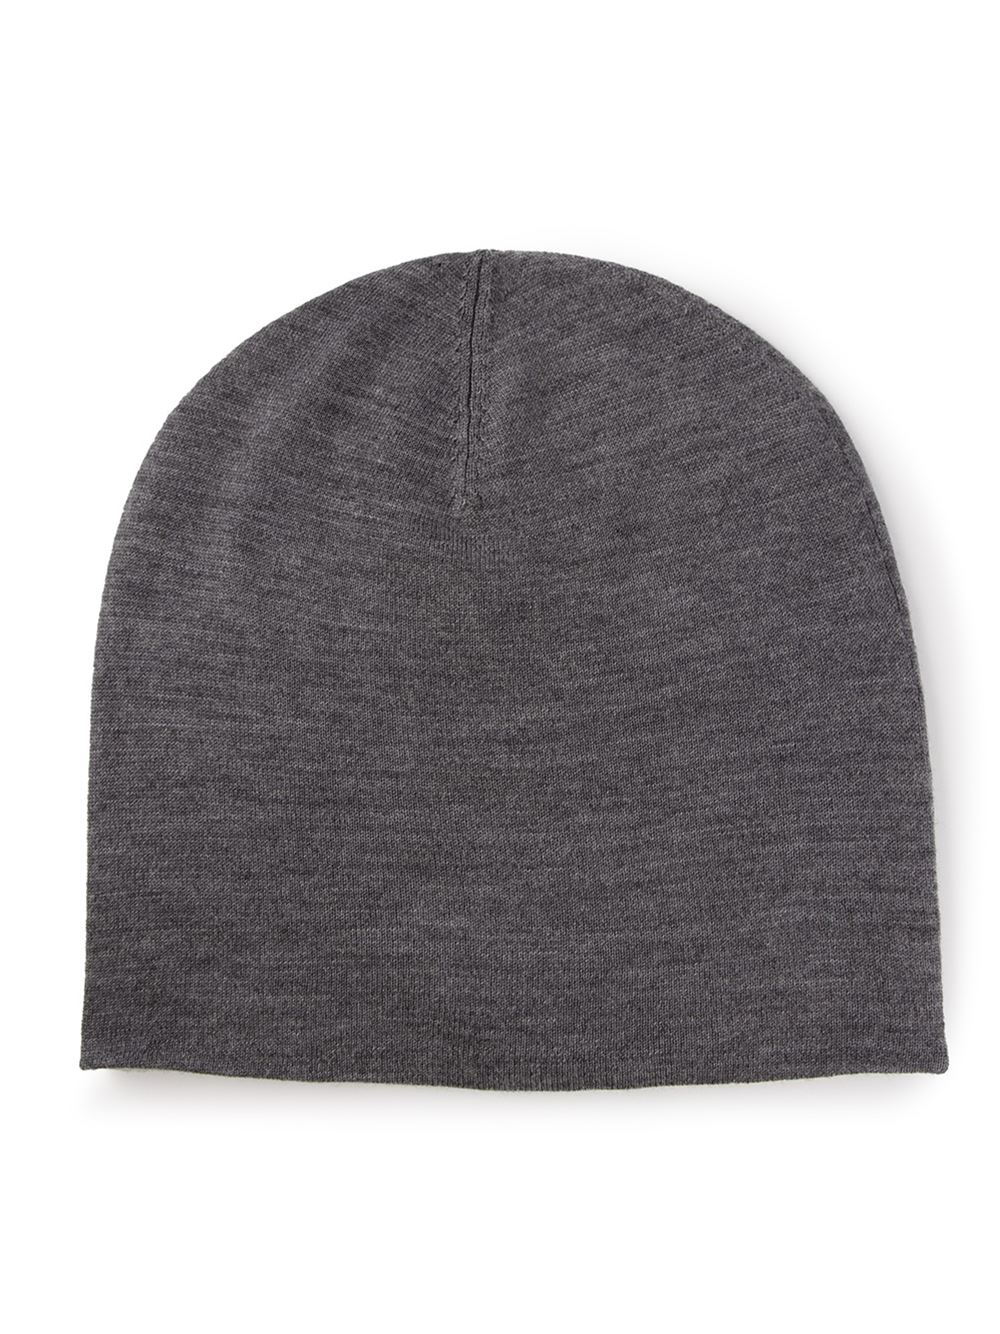 Lyst Acne Studios Classic Beanie Hat In Gray For Men